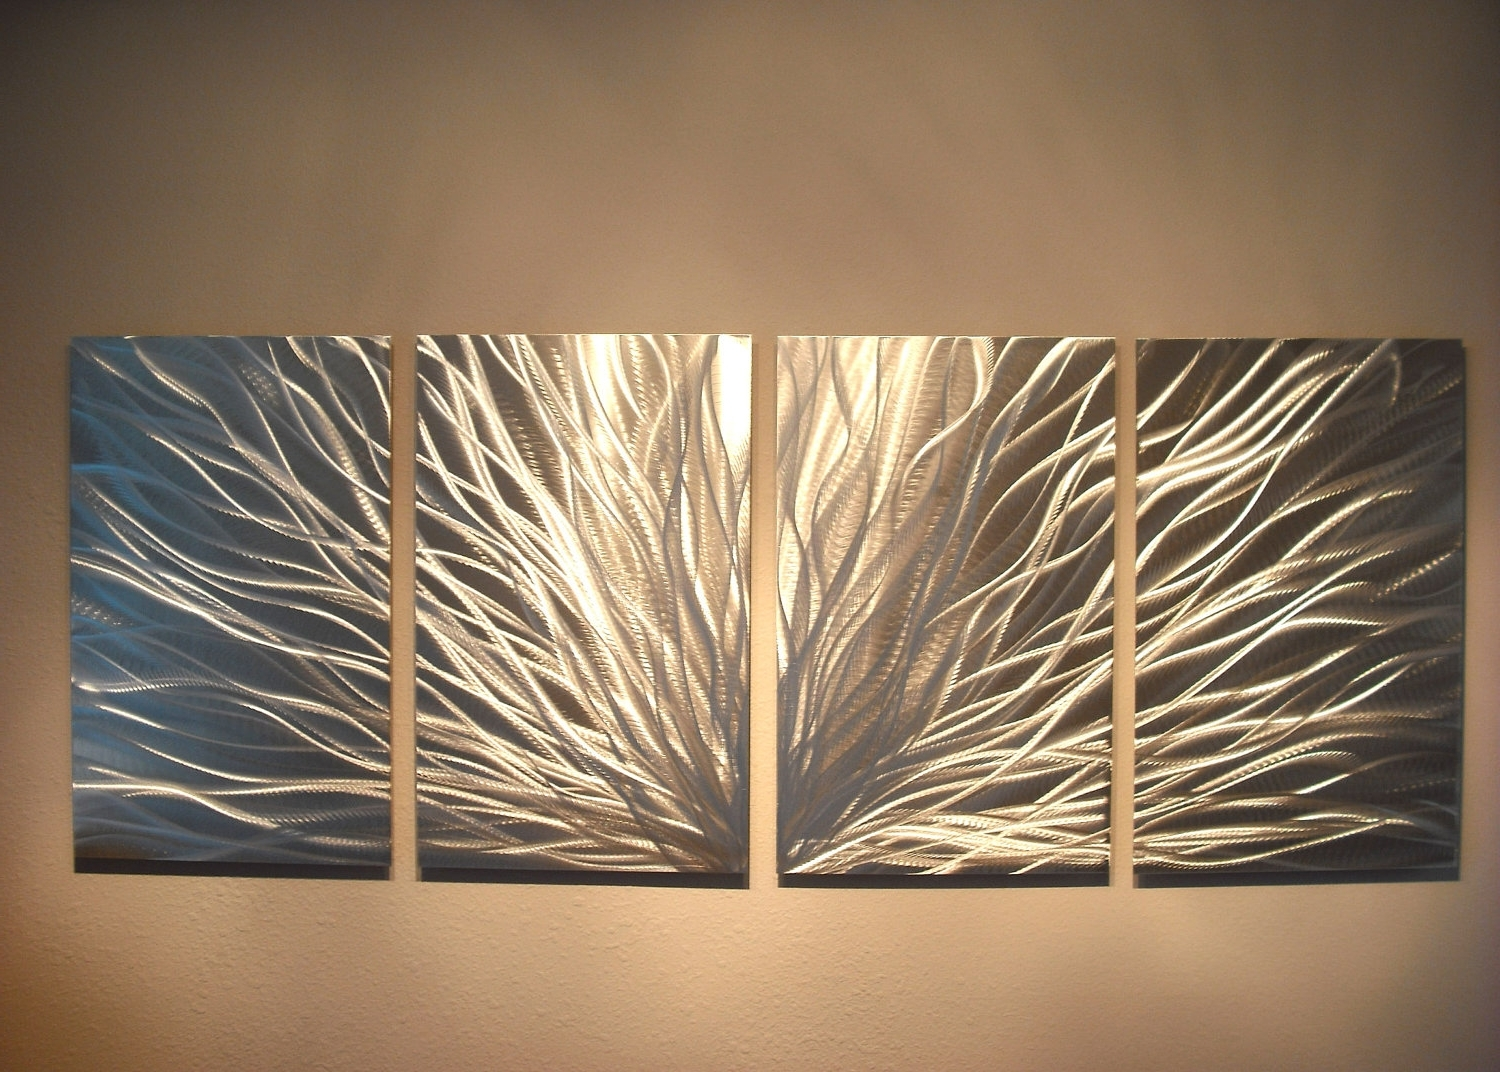 Most Recent Abstract Metal Wall Art Sculptures Inside Radiance – Abstract Metal Wall Art Contemporary Modern Decor (View 10 of 15)